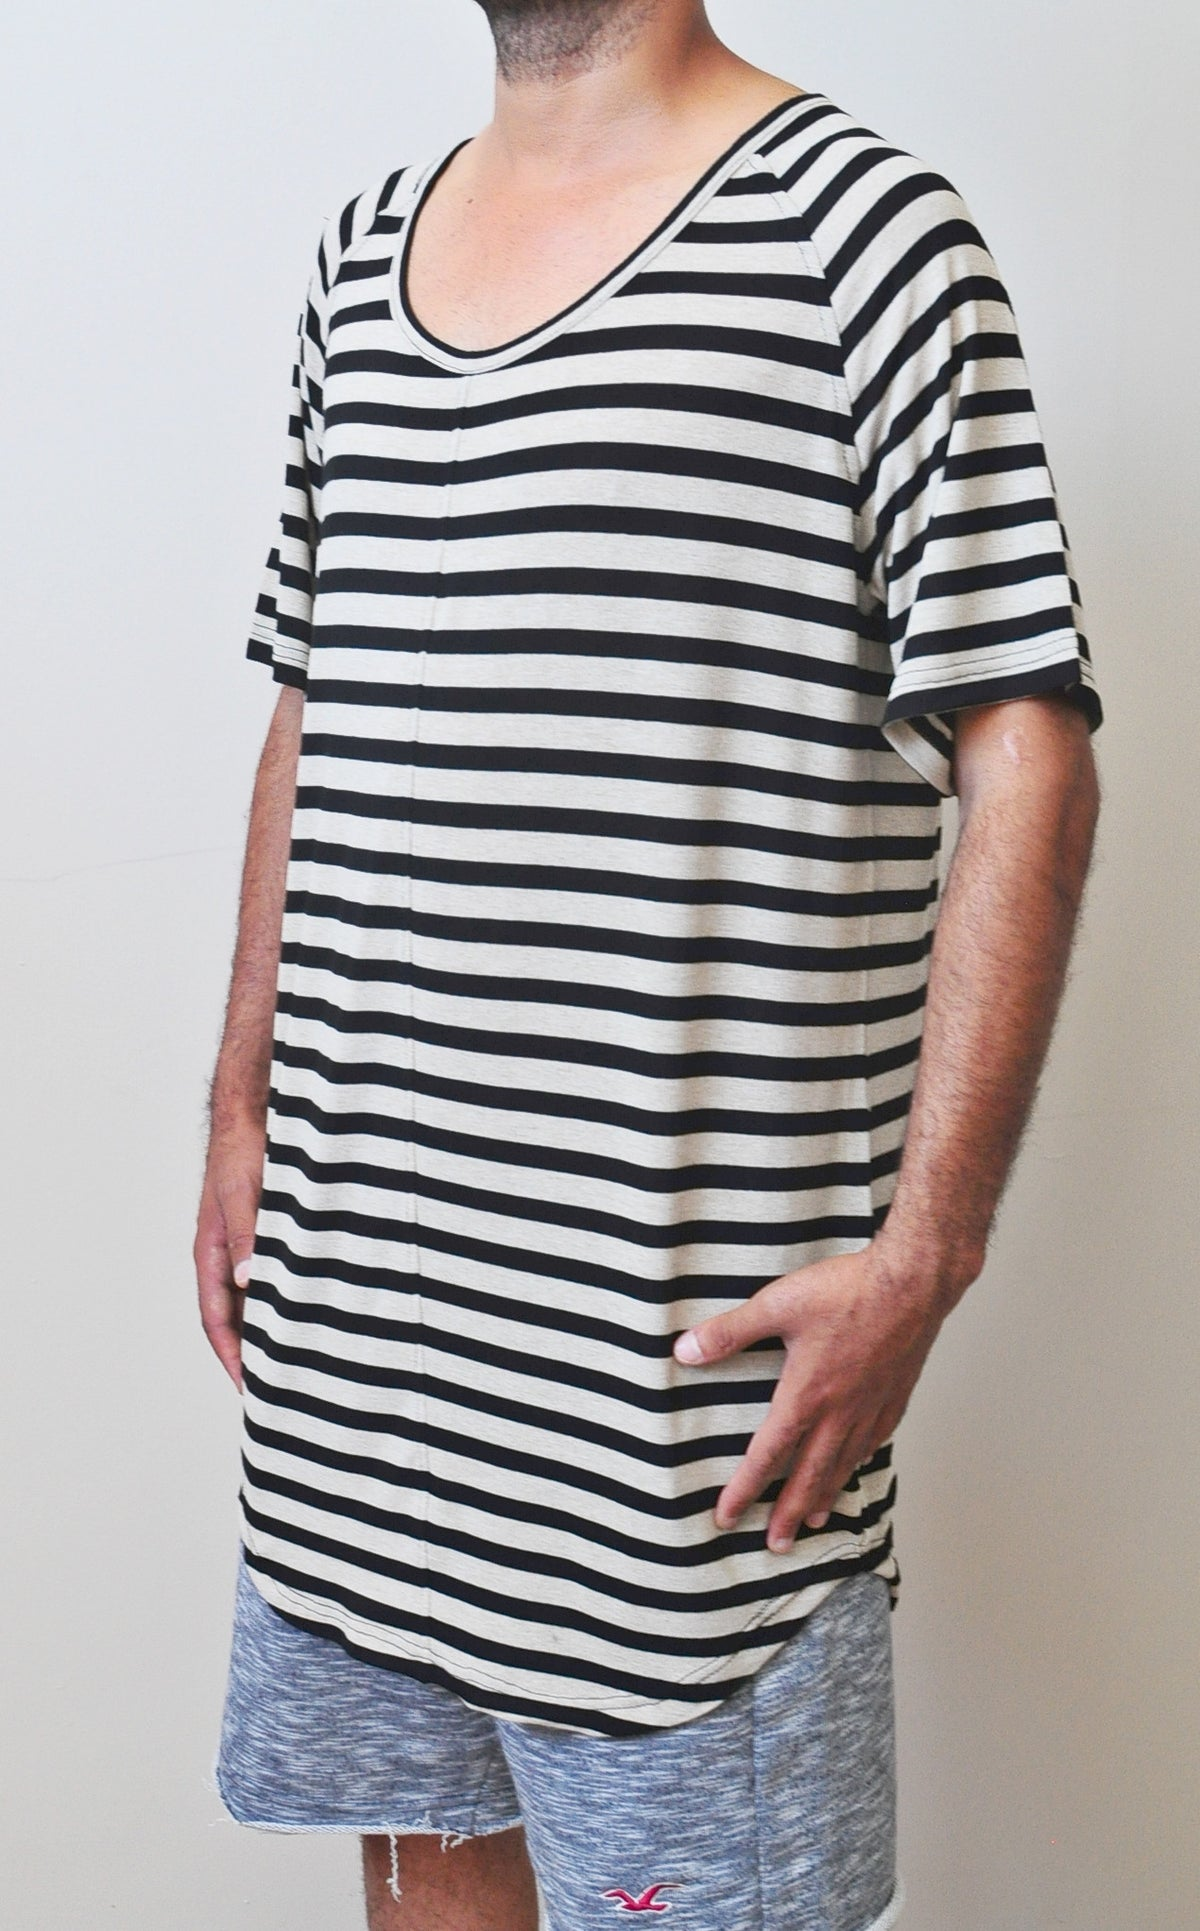 Knit Striped Under Scoop T-shirt - Extended Overlong Short Sleeve Drop Shoulder Centre back seam